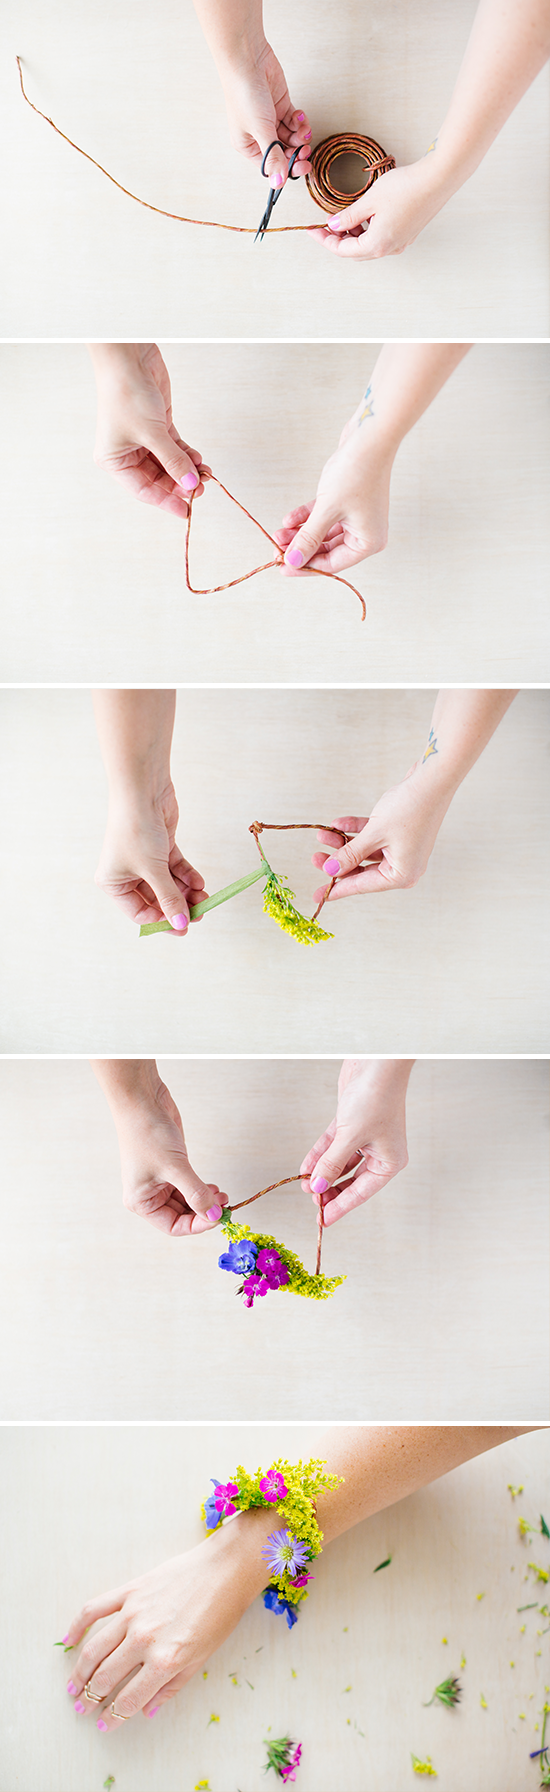 How to Make a DIY Flower Bracelet